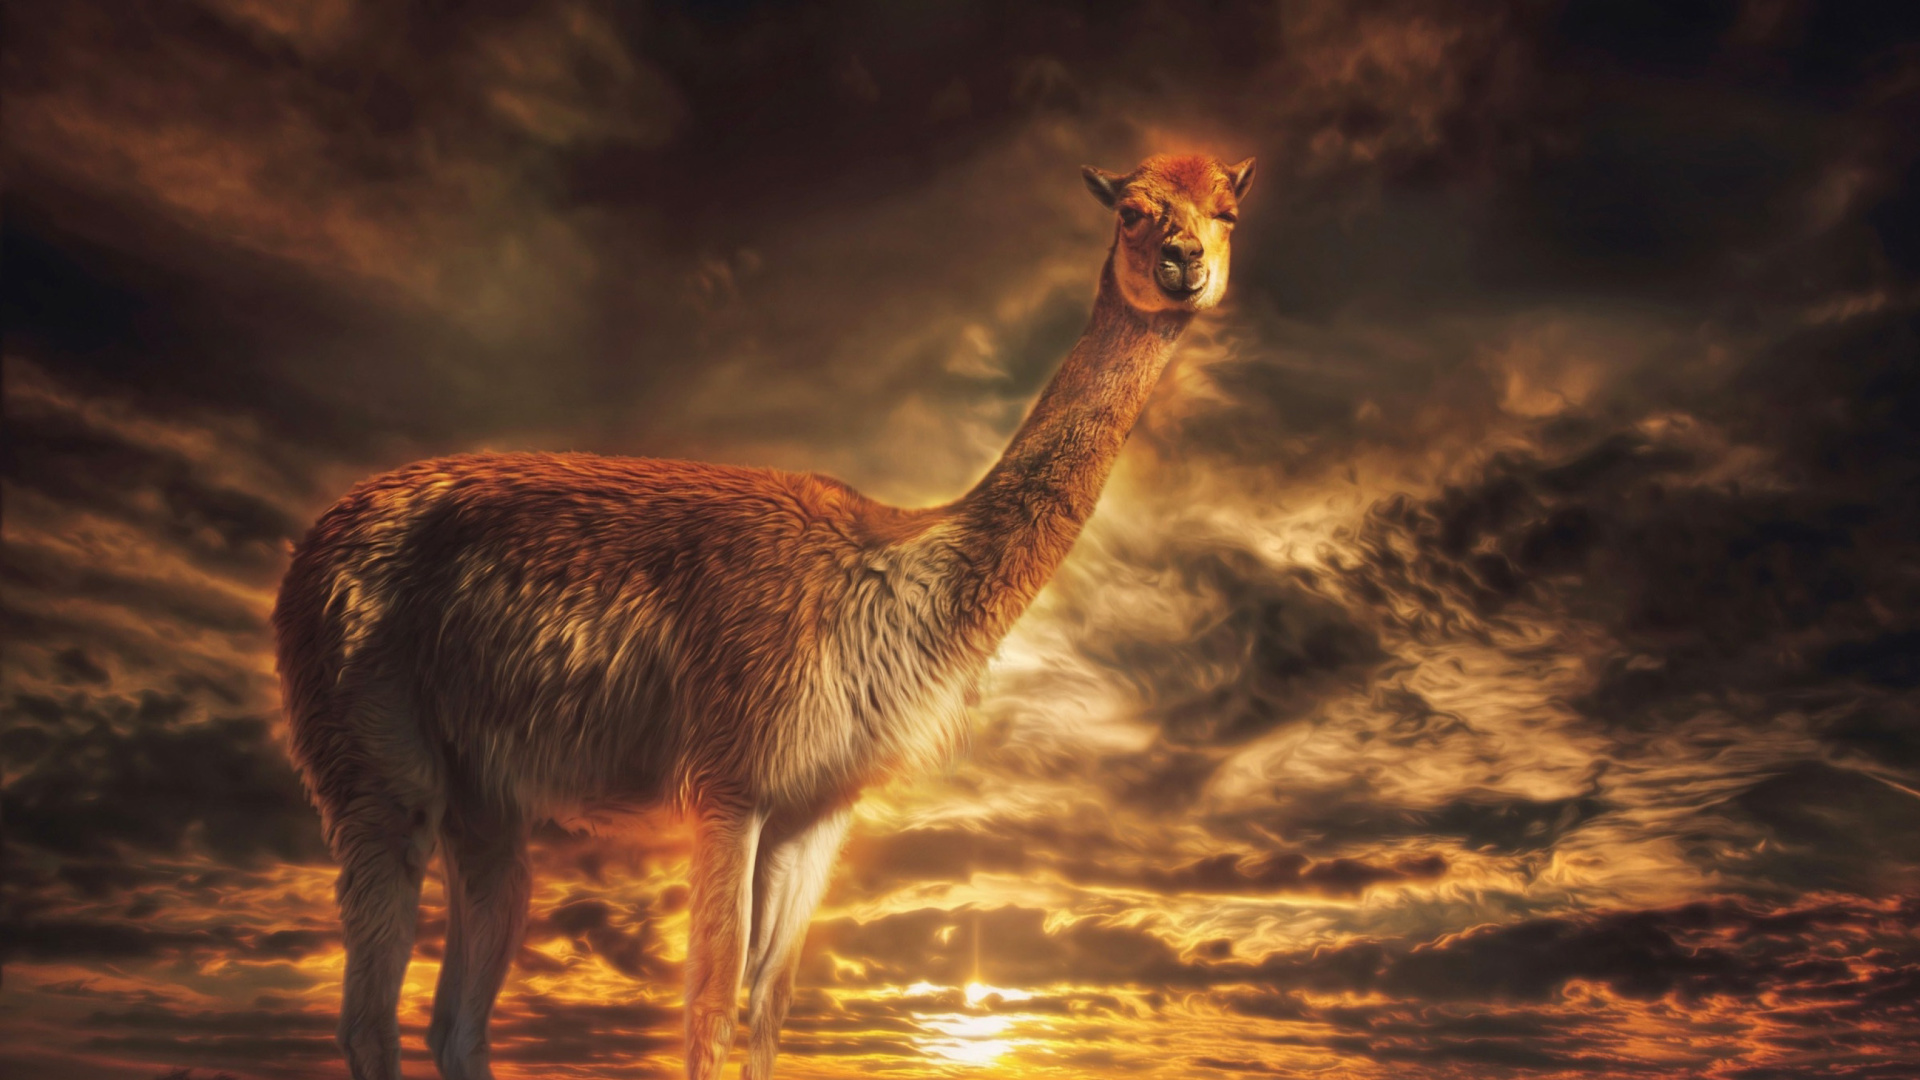 Llama Wallpaper For Desktop 1920x1080 Full HD